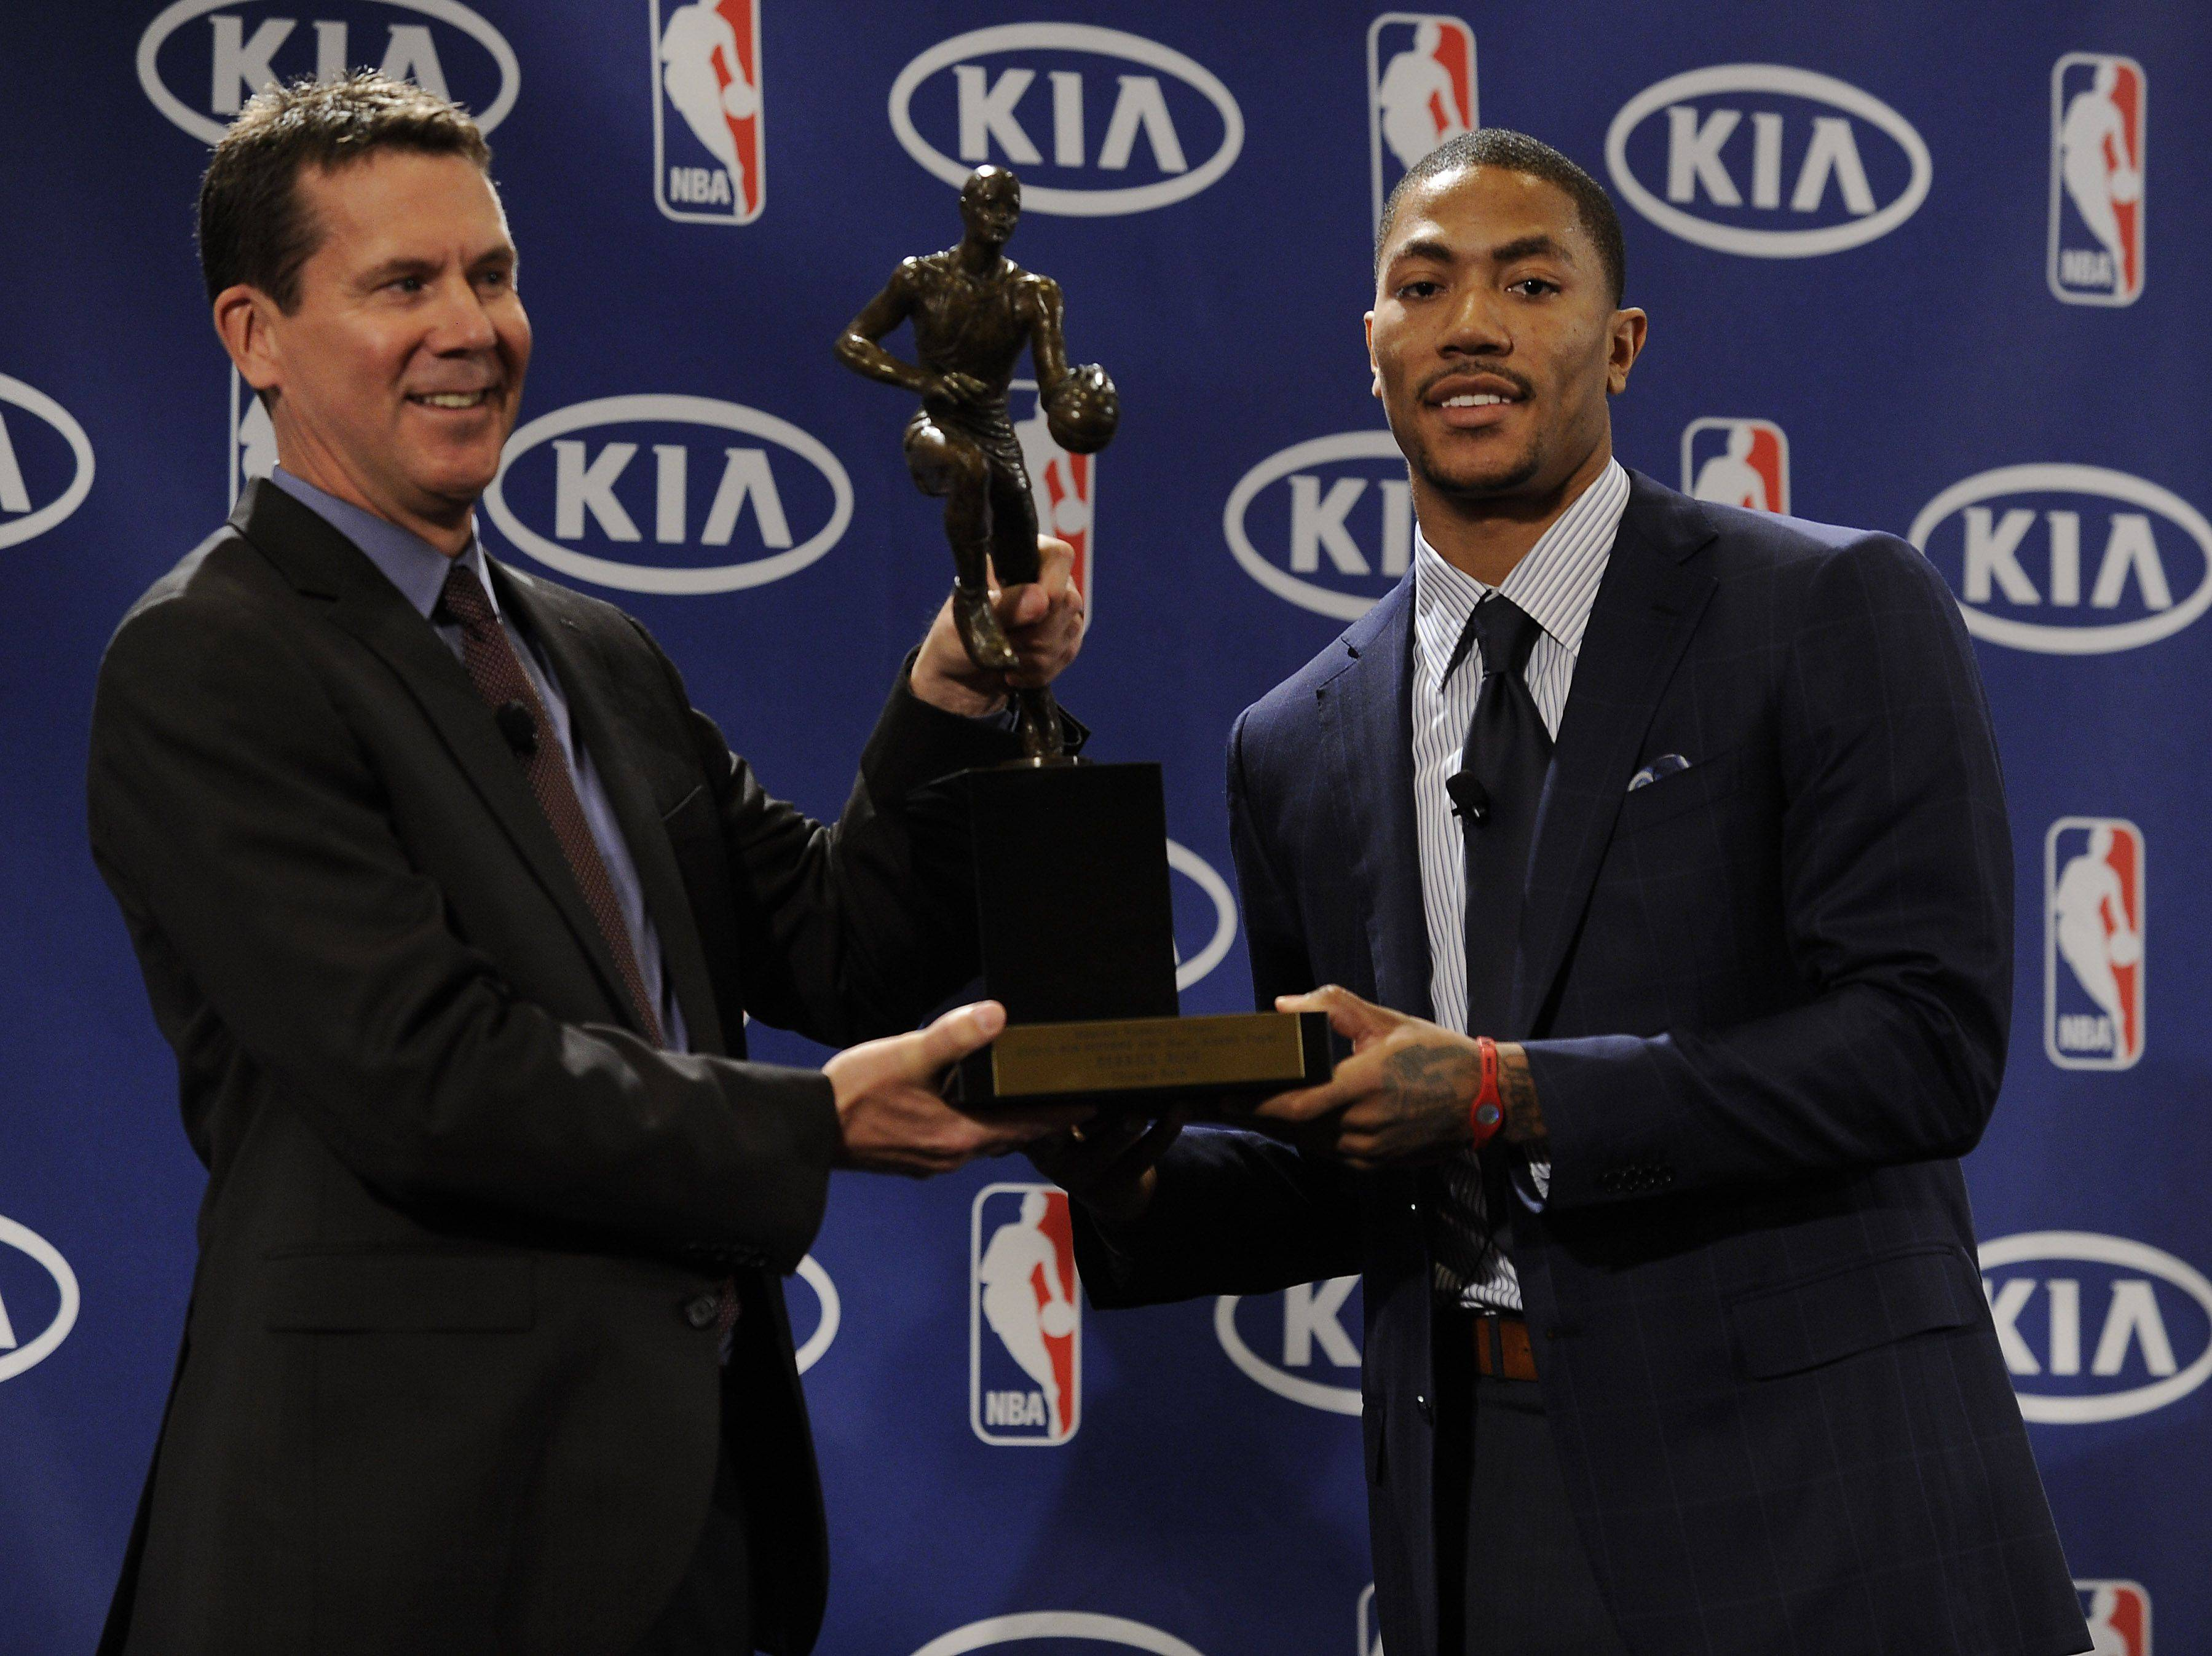 Derrick Rose with Tim Chaney, Director of Marketing at KIA Motors America.